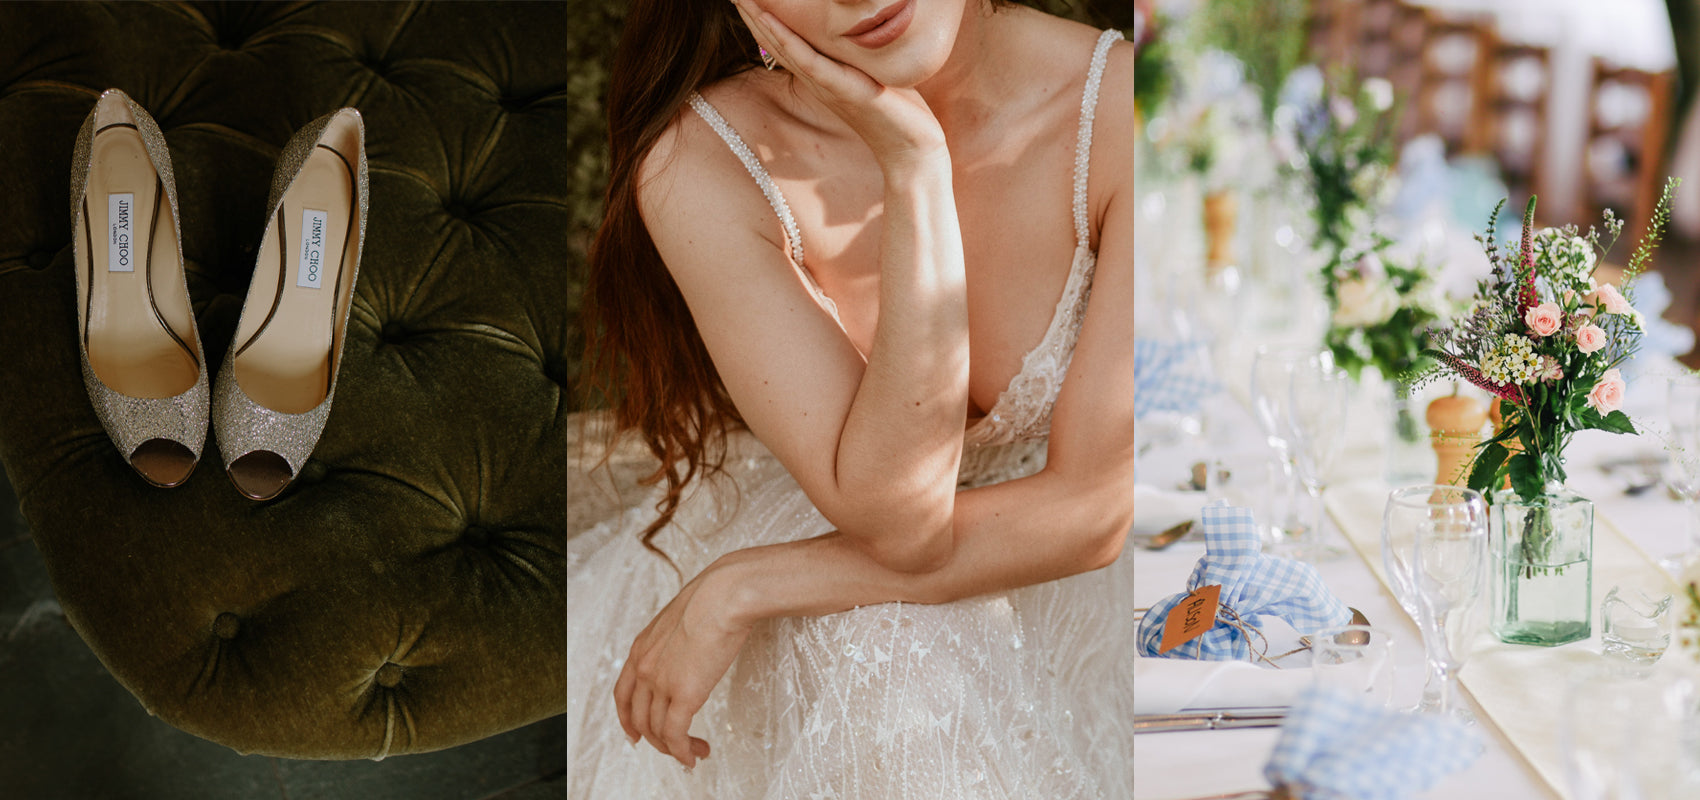 Host a virtual bridal shower with these picks from Journelle